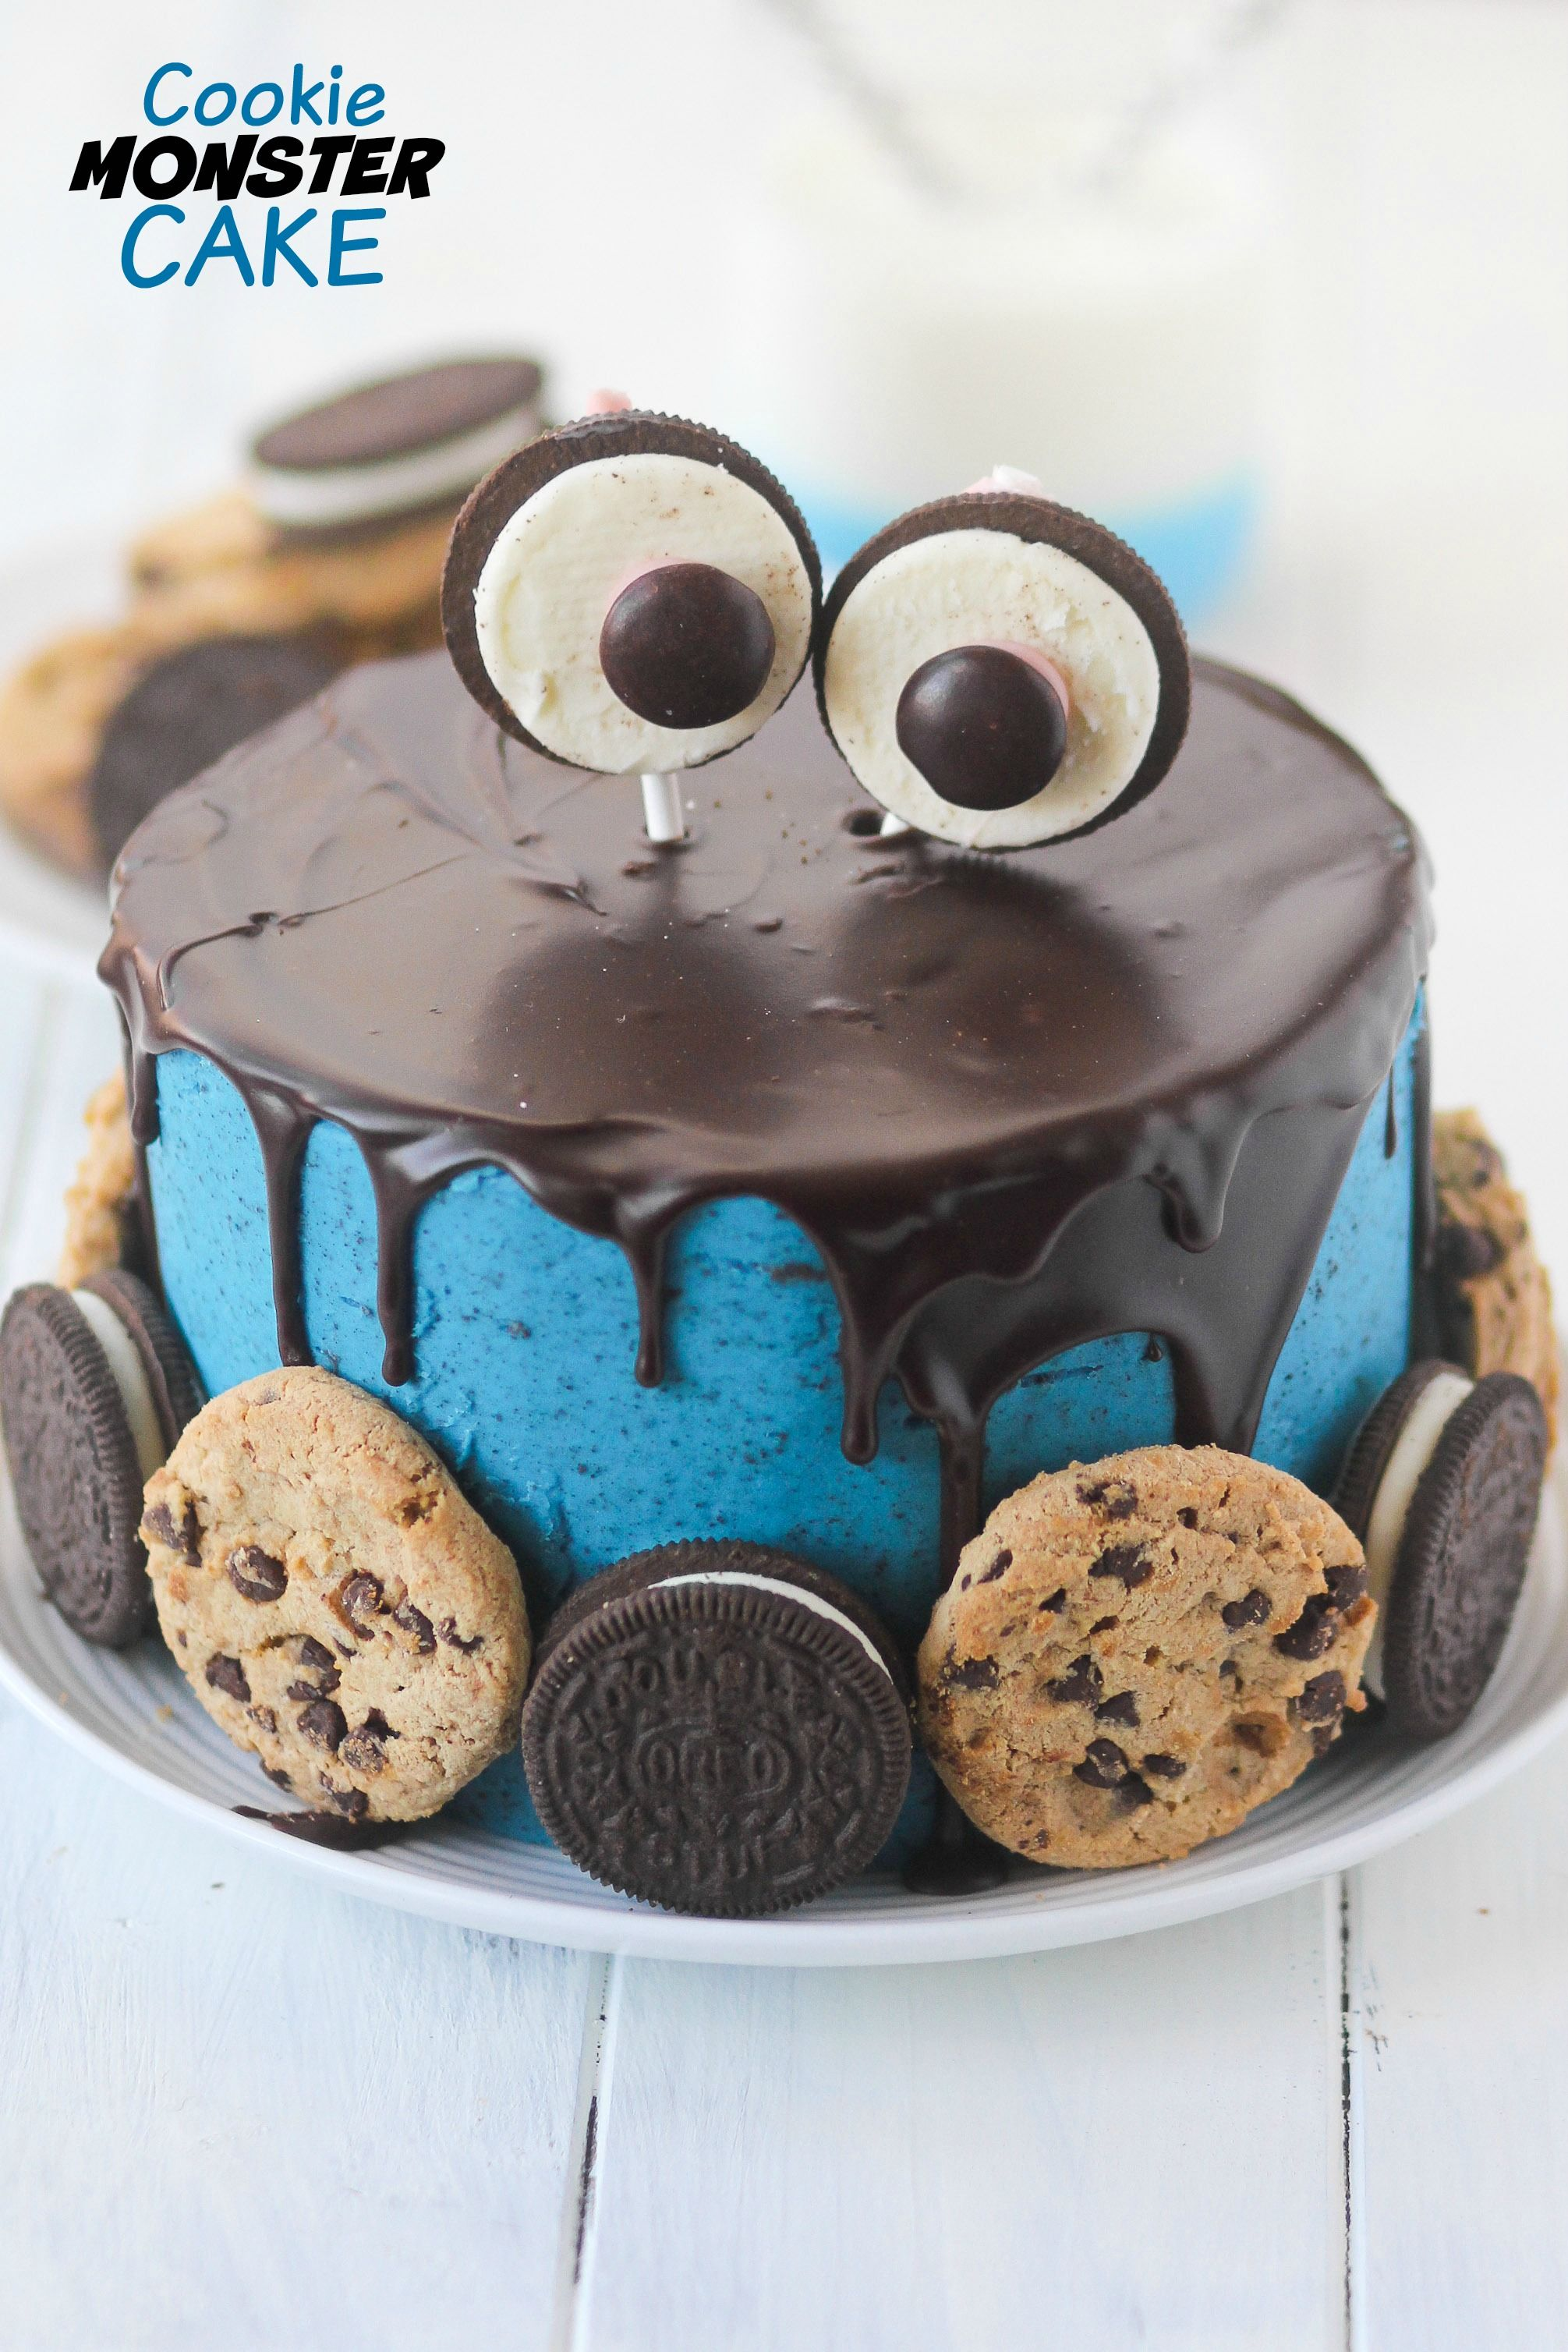 Cookie Monster Cake Is Adorable And Full Of Cookies